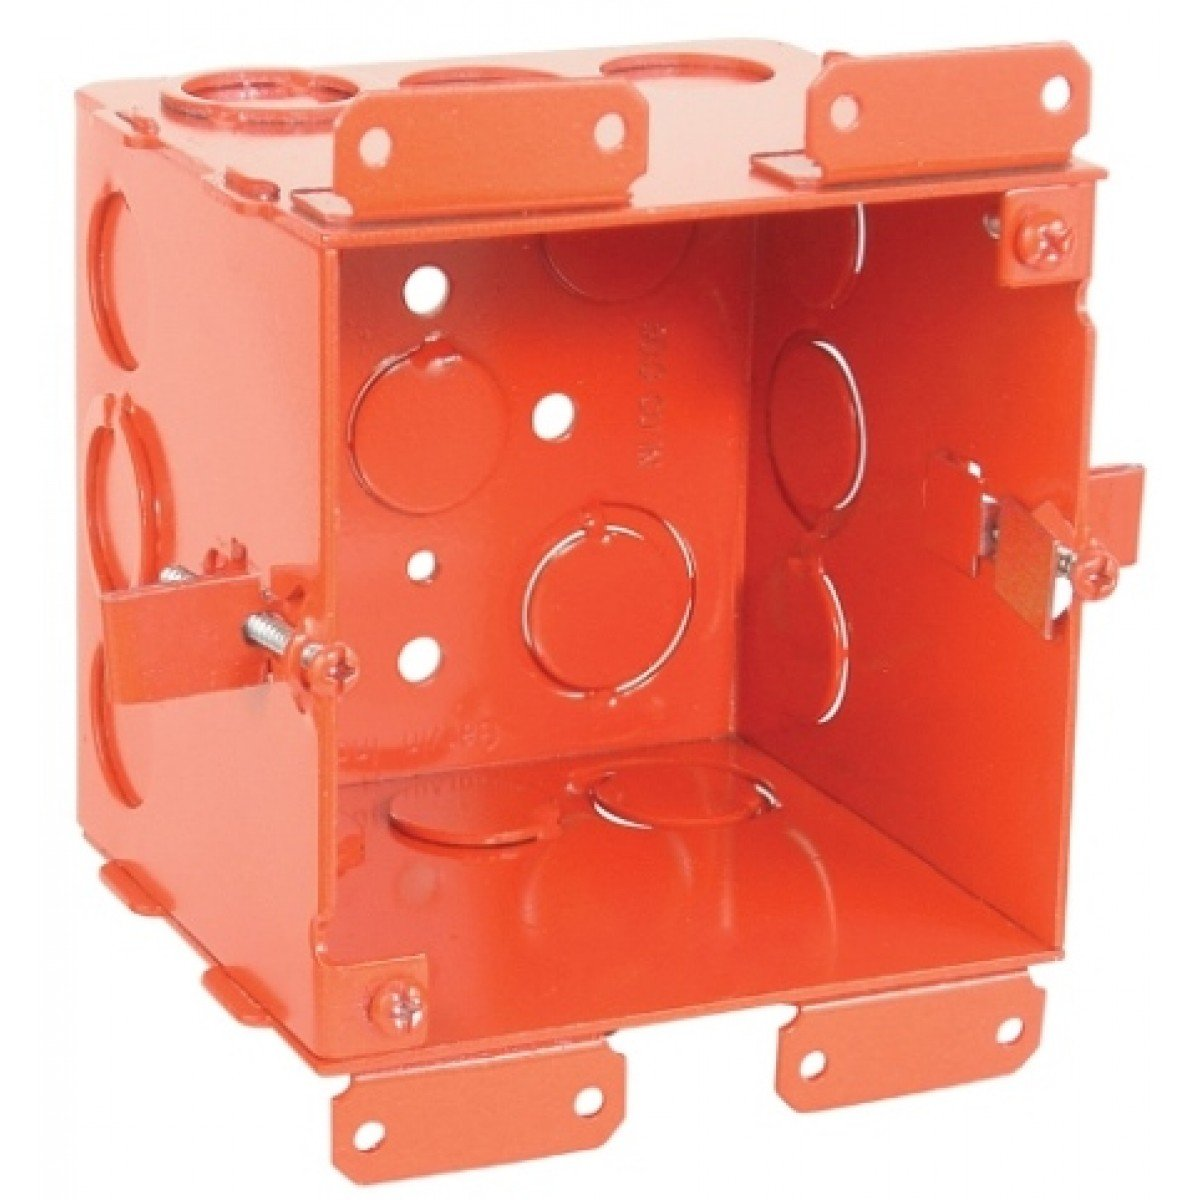 1 Pc, 4'' Square Cut In Old Work Junction Box, Red, 2-1/8 In. Deep, (6) 1/2 In. & (6) 1/2-3/4 In. Side Knockouts; (2) 1/2 In. & (2) 3/4 In. Bottom Knockouts, .0625 Galvanized Steel; Red